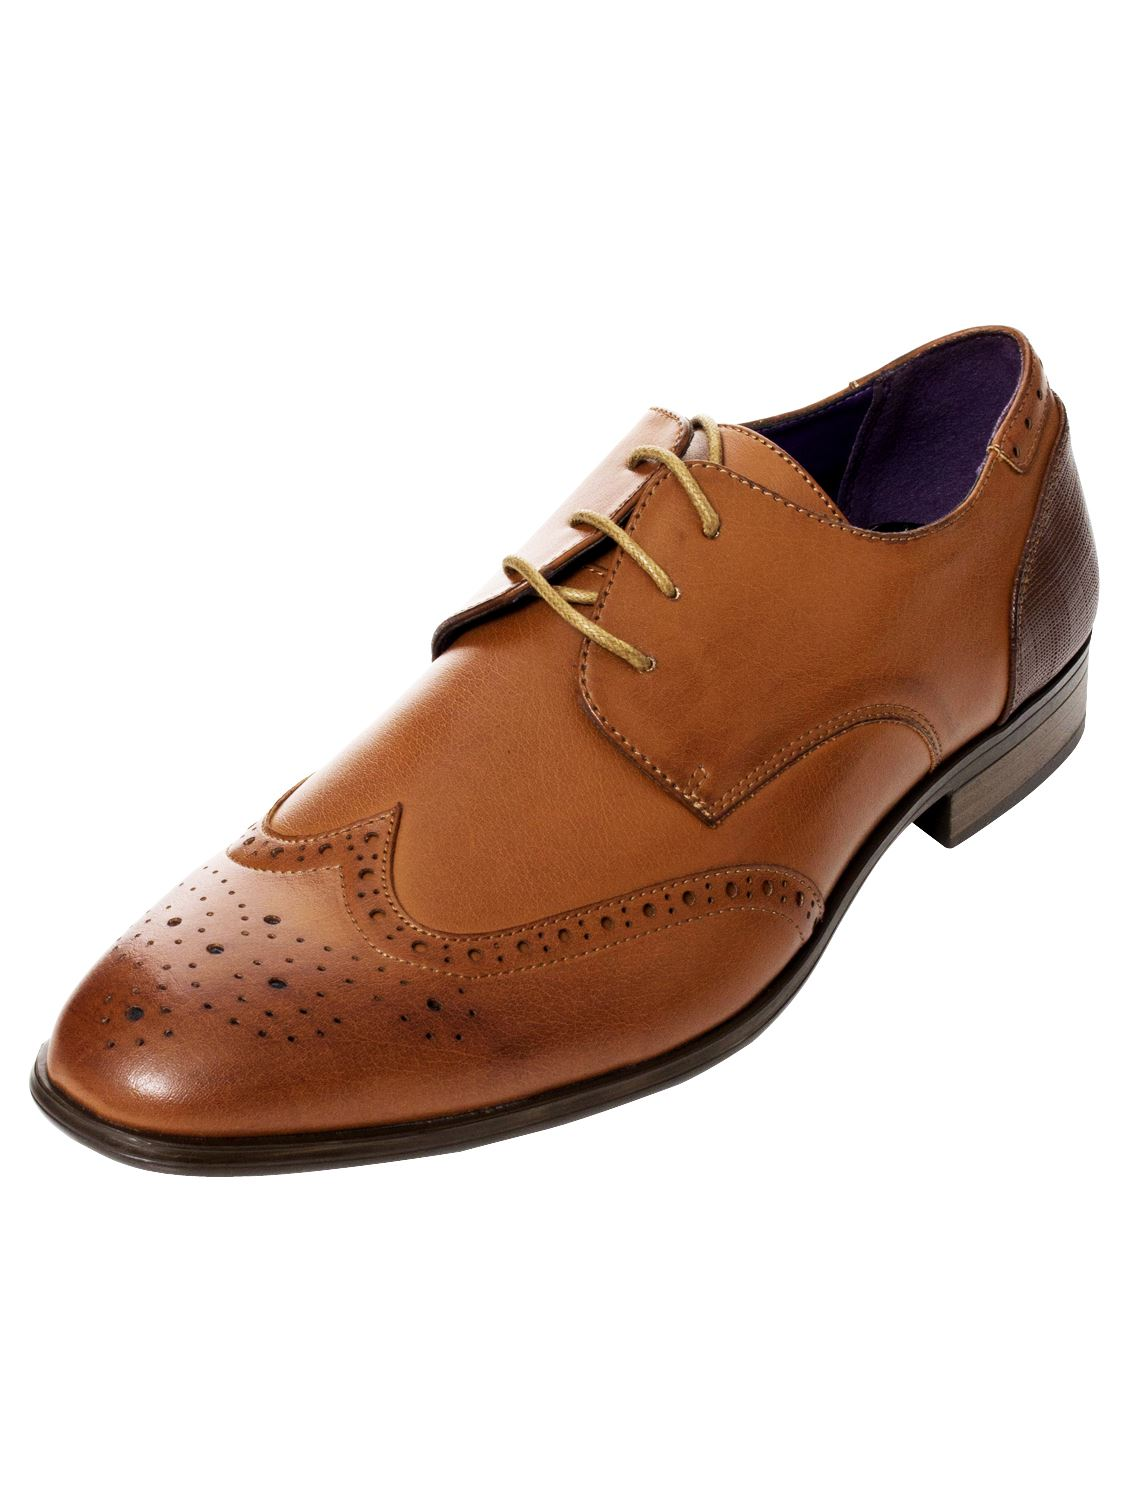 Mens-Faux-Leather-Shoes-Smart-Formal-Wedding-Office-Lace-Up-Designer-Brogues thumbnail 23